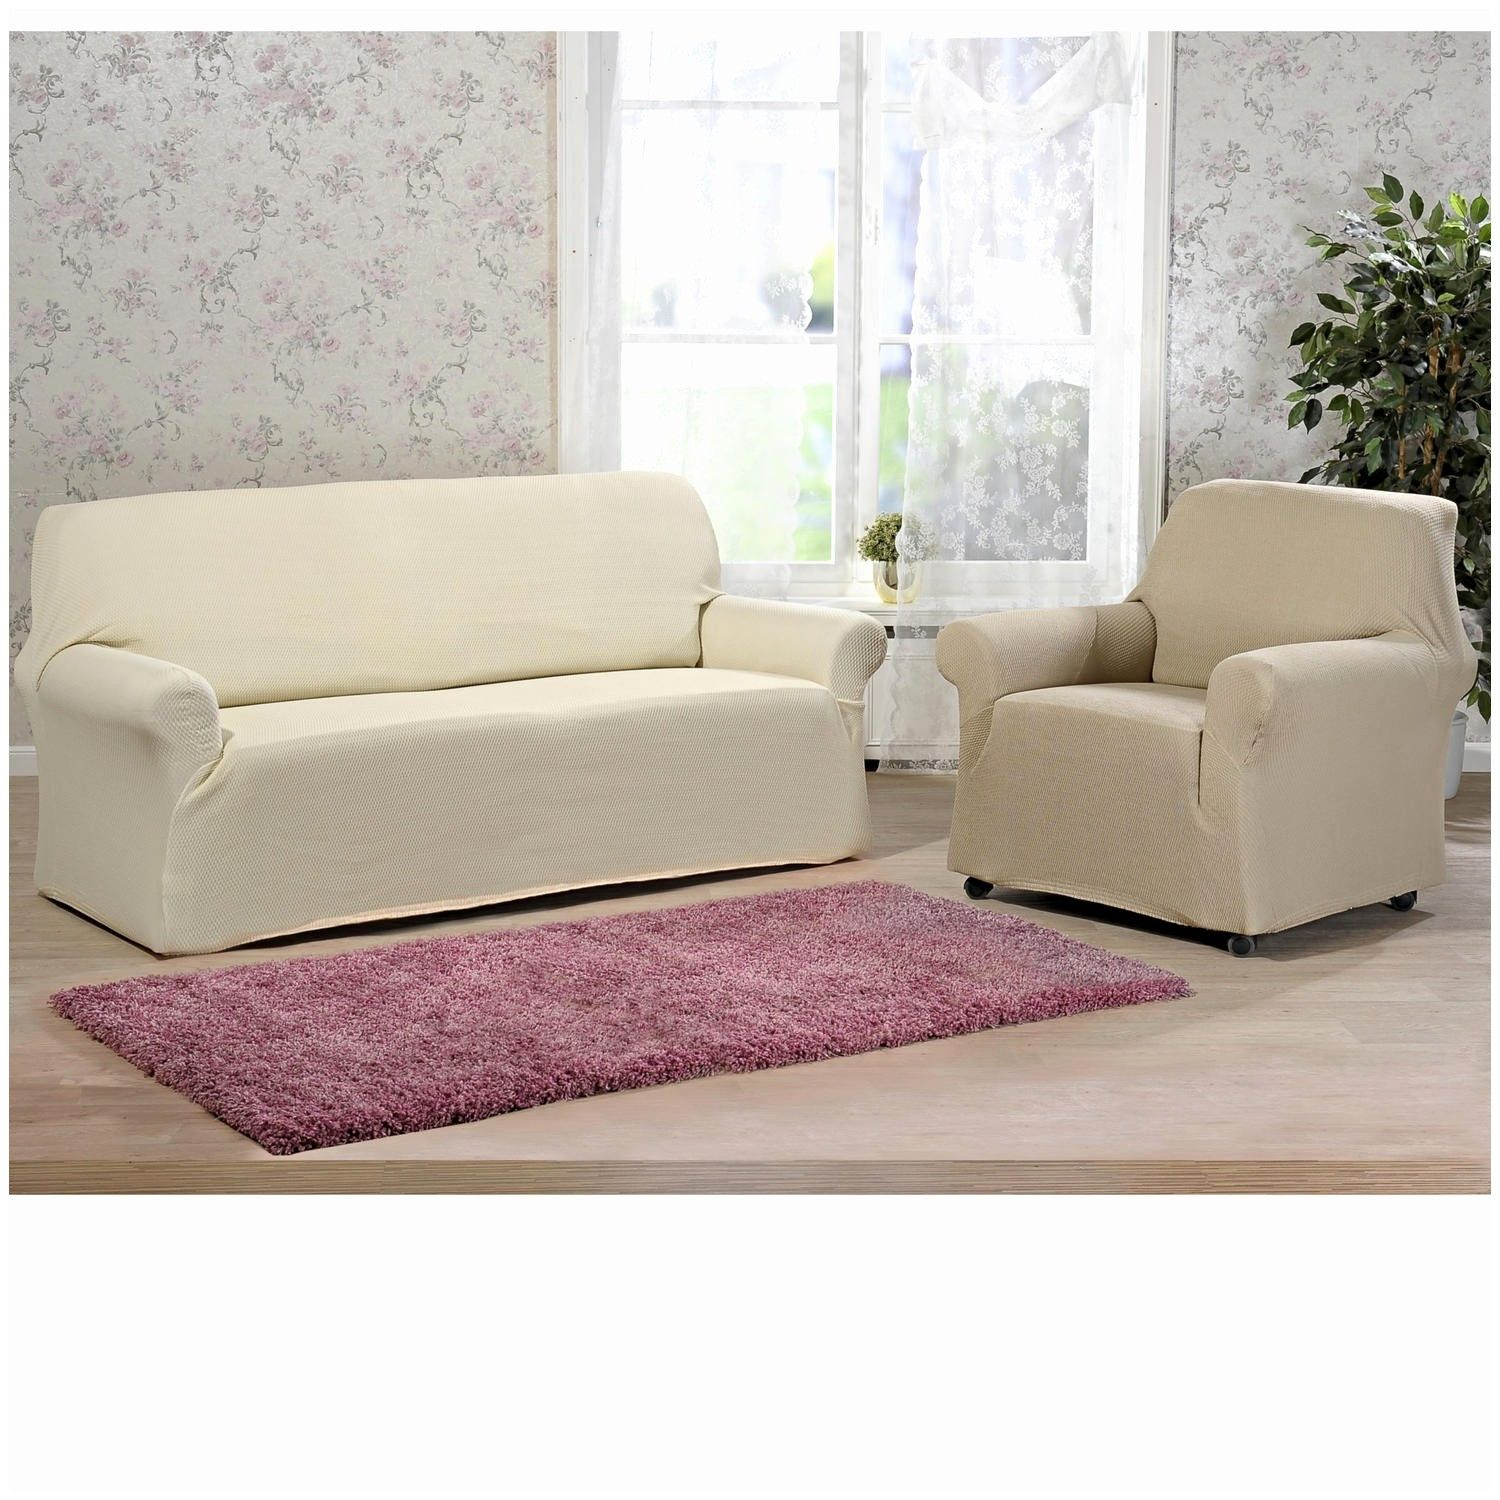 Sympathisch Sofa Relaxfunktion Beste Wahl Mit Höffner Check More At Https://tridentbeauties.org/